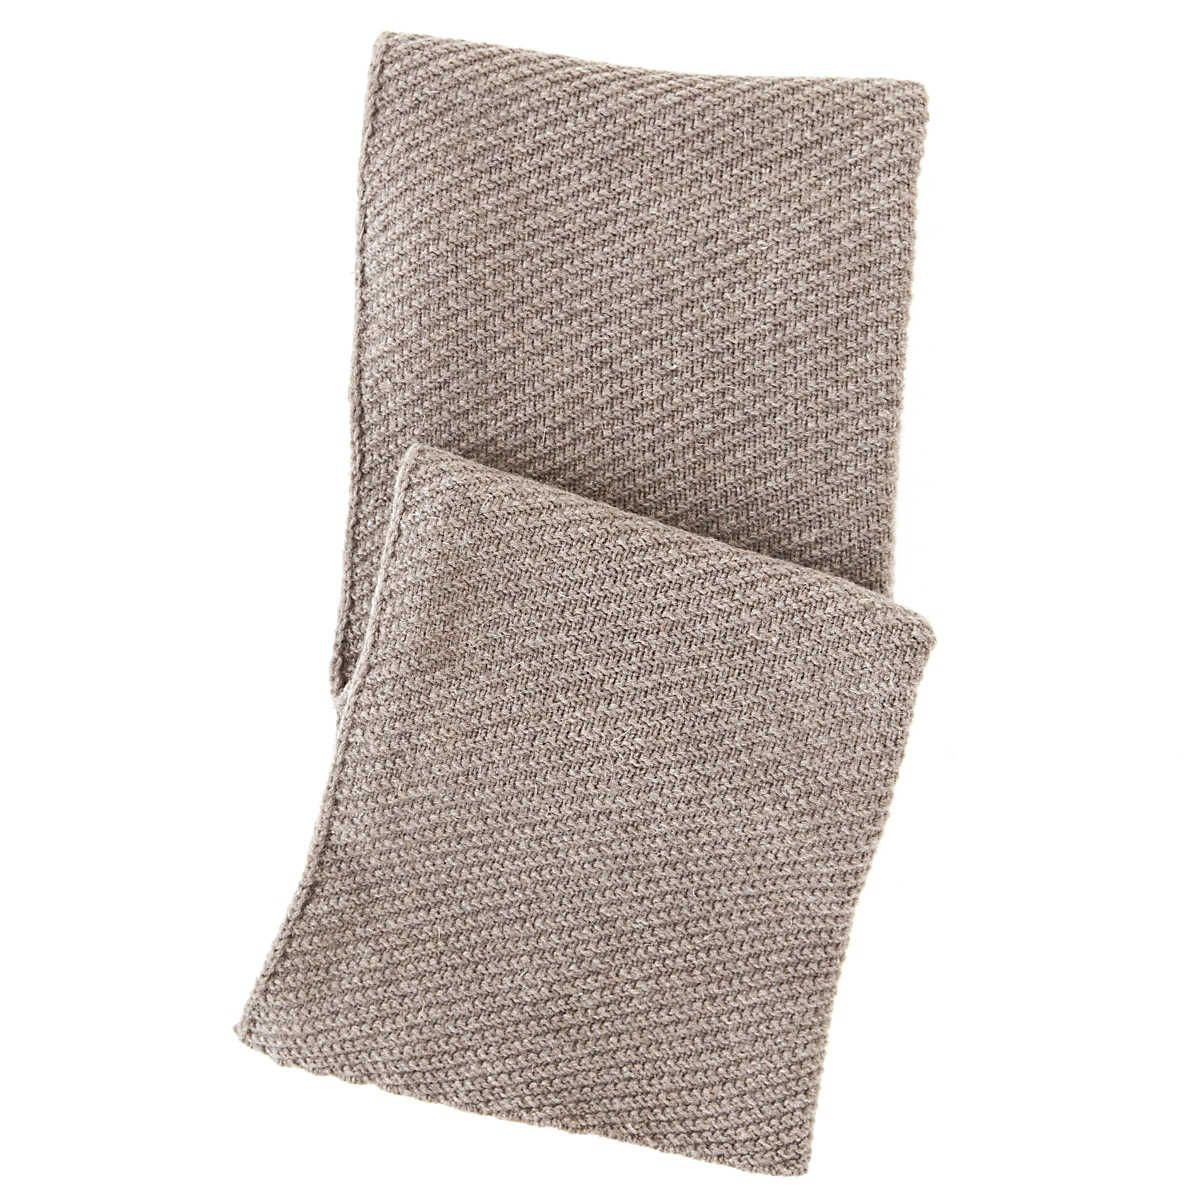 Stonehaven Throw The Outlet Decorative throws blanket